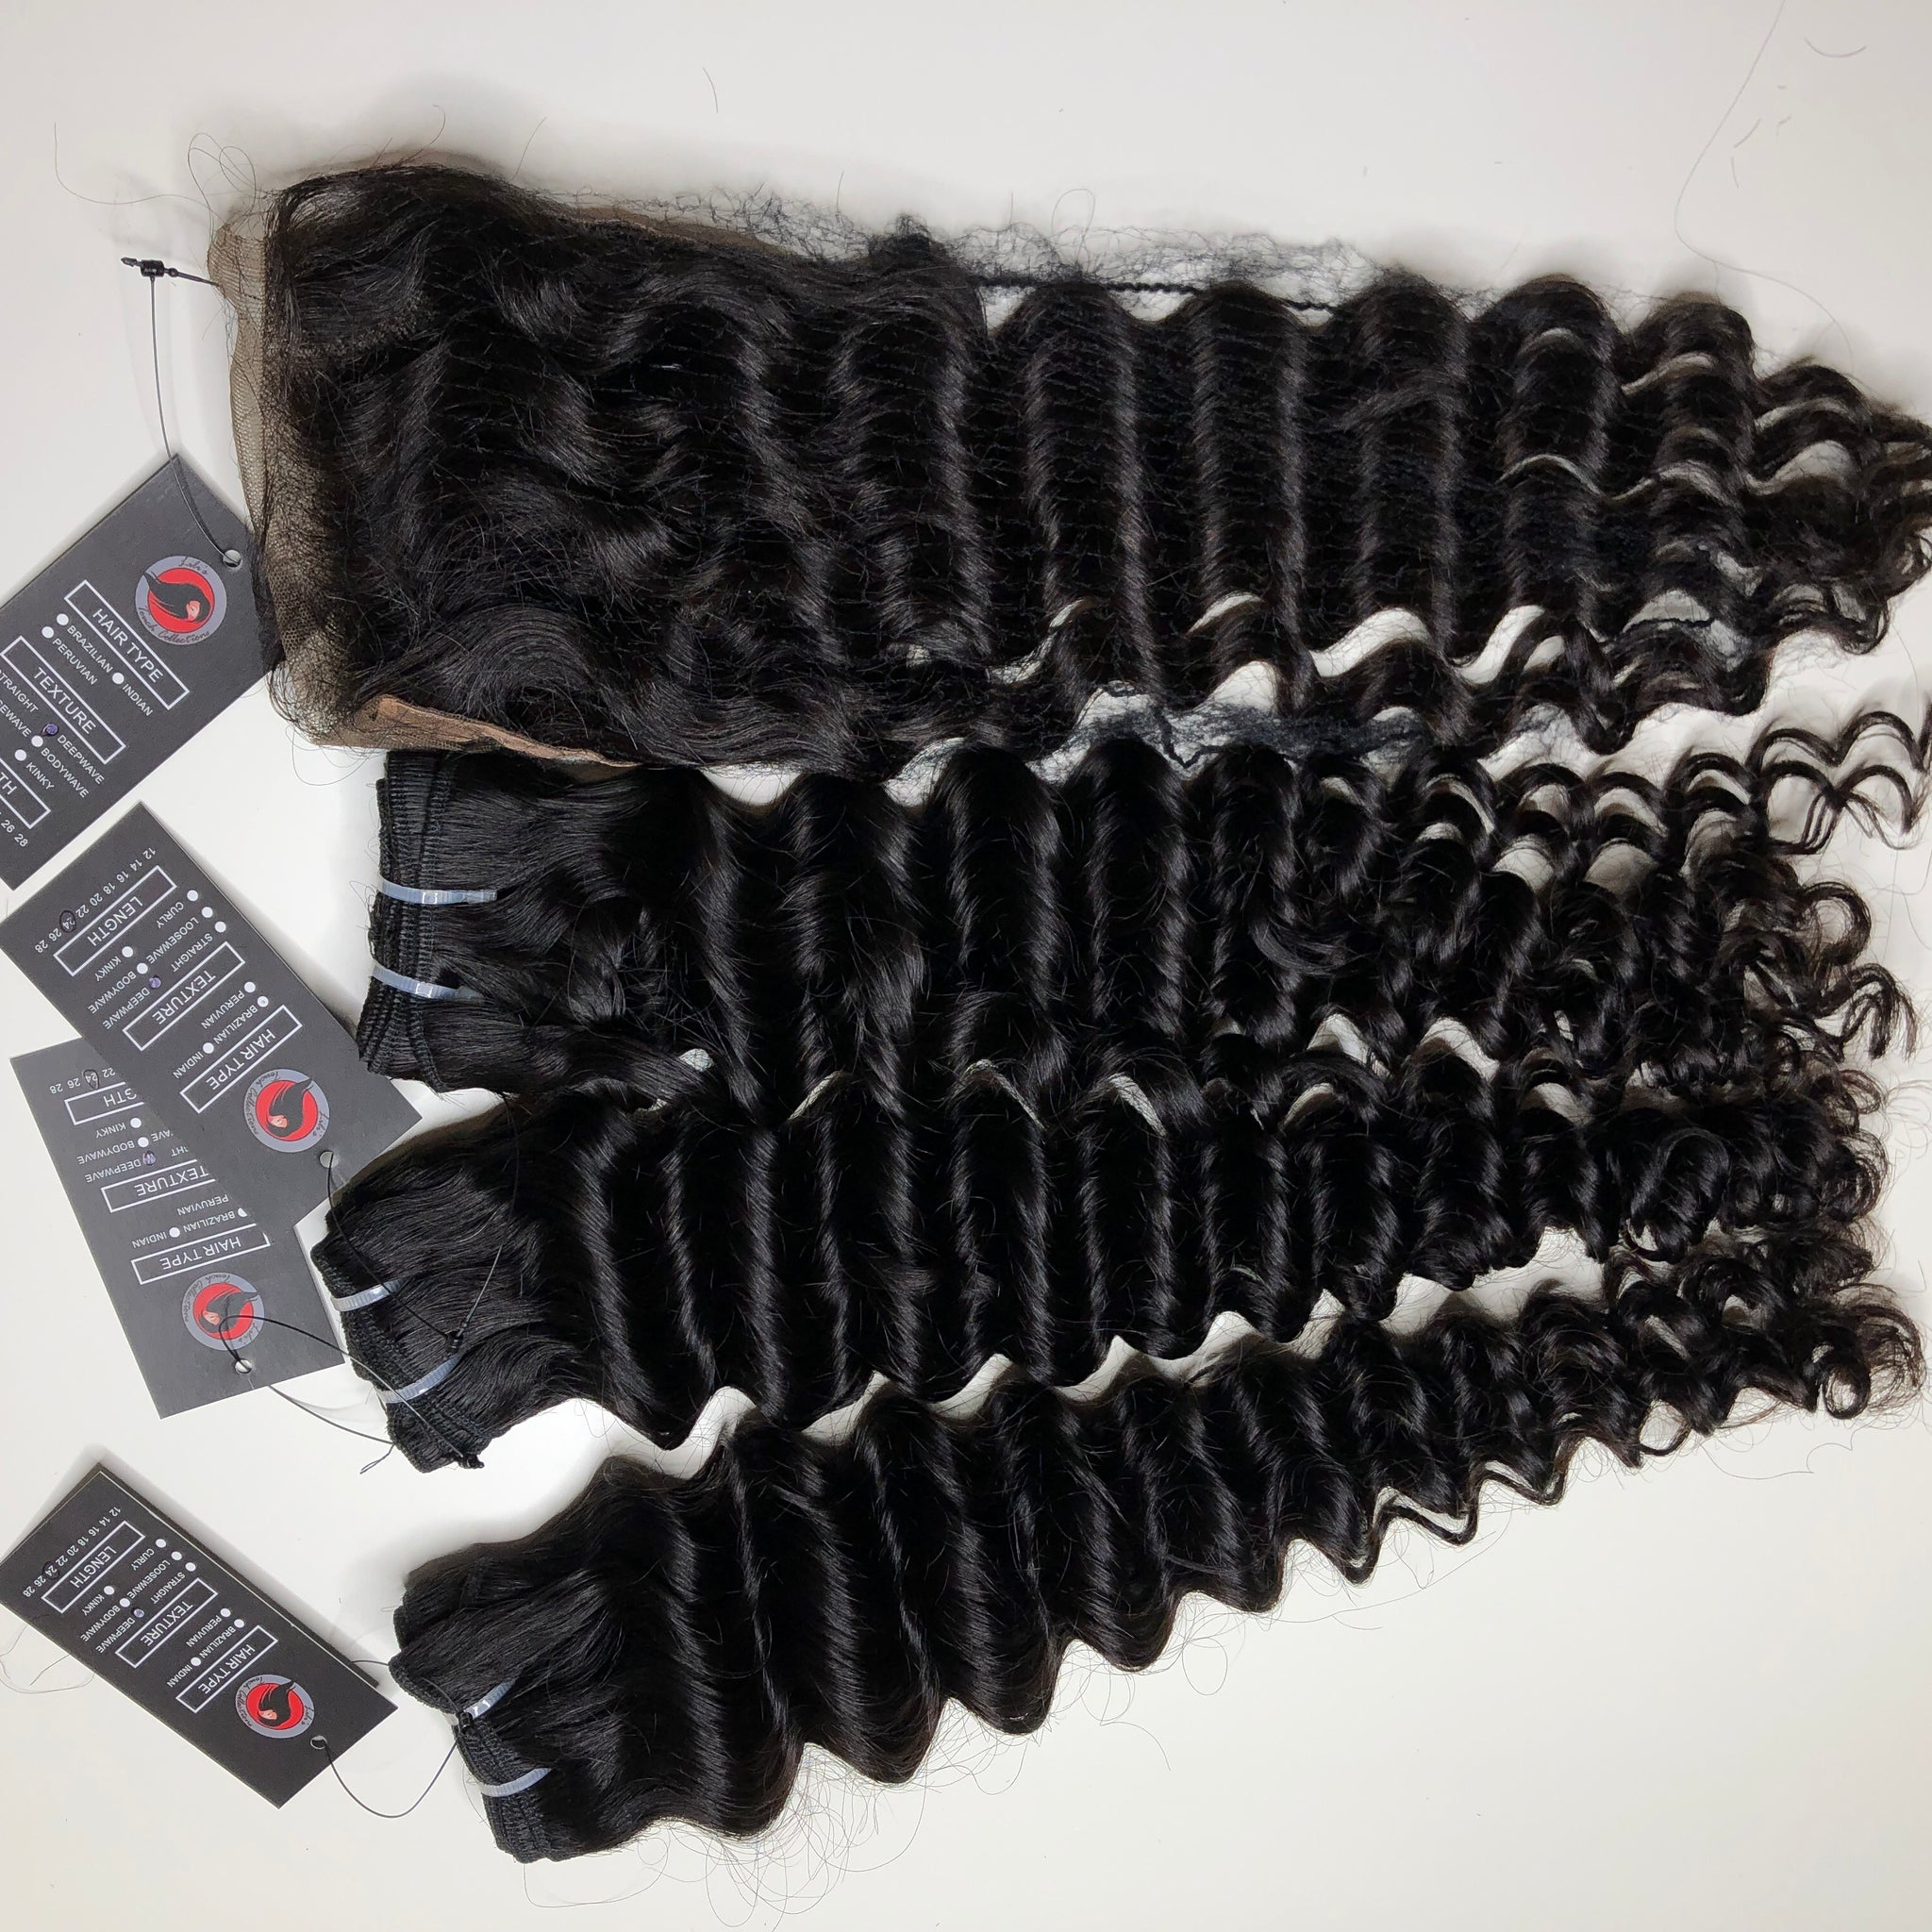 "Burmese deep Curly 3 Bundles 24"" and 4*4  18"" lace closure Unprossed"